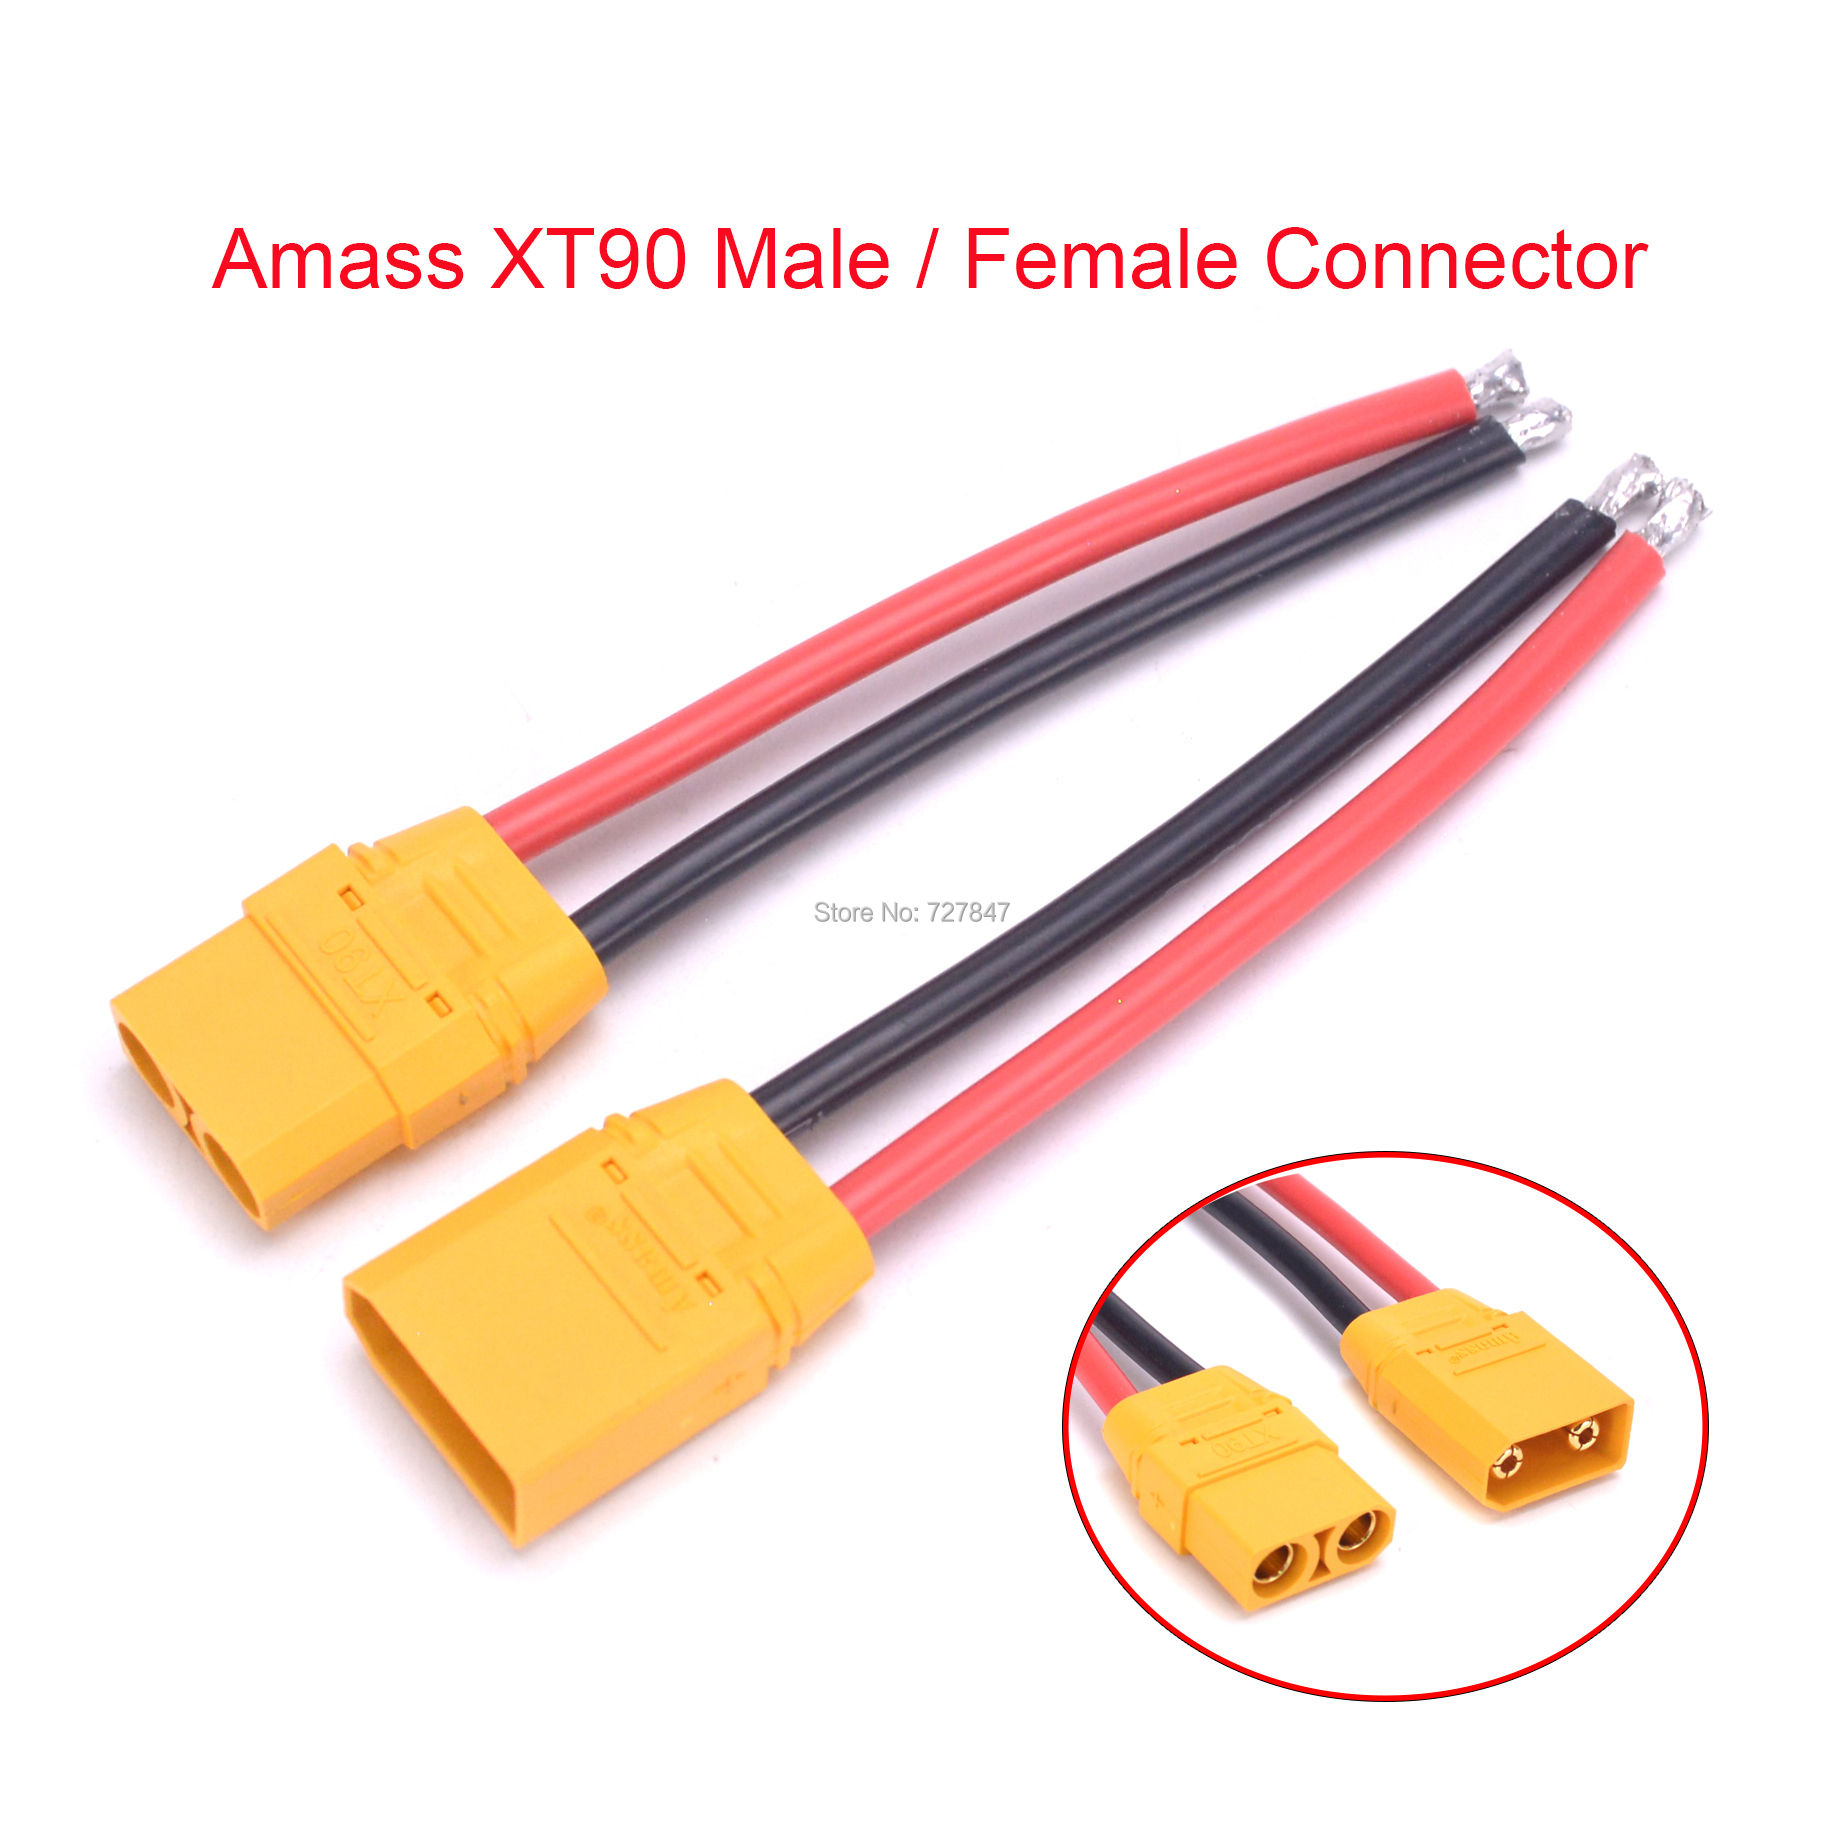 Amass XT90 XT 90 Connector Male Female Connector Plug RC Battery Cable With 90mm 12AWG Silicone Wire